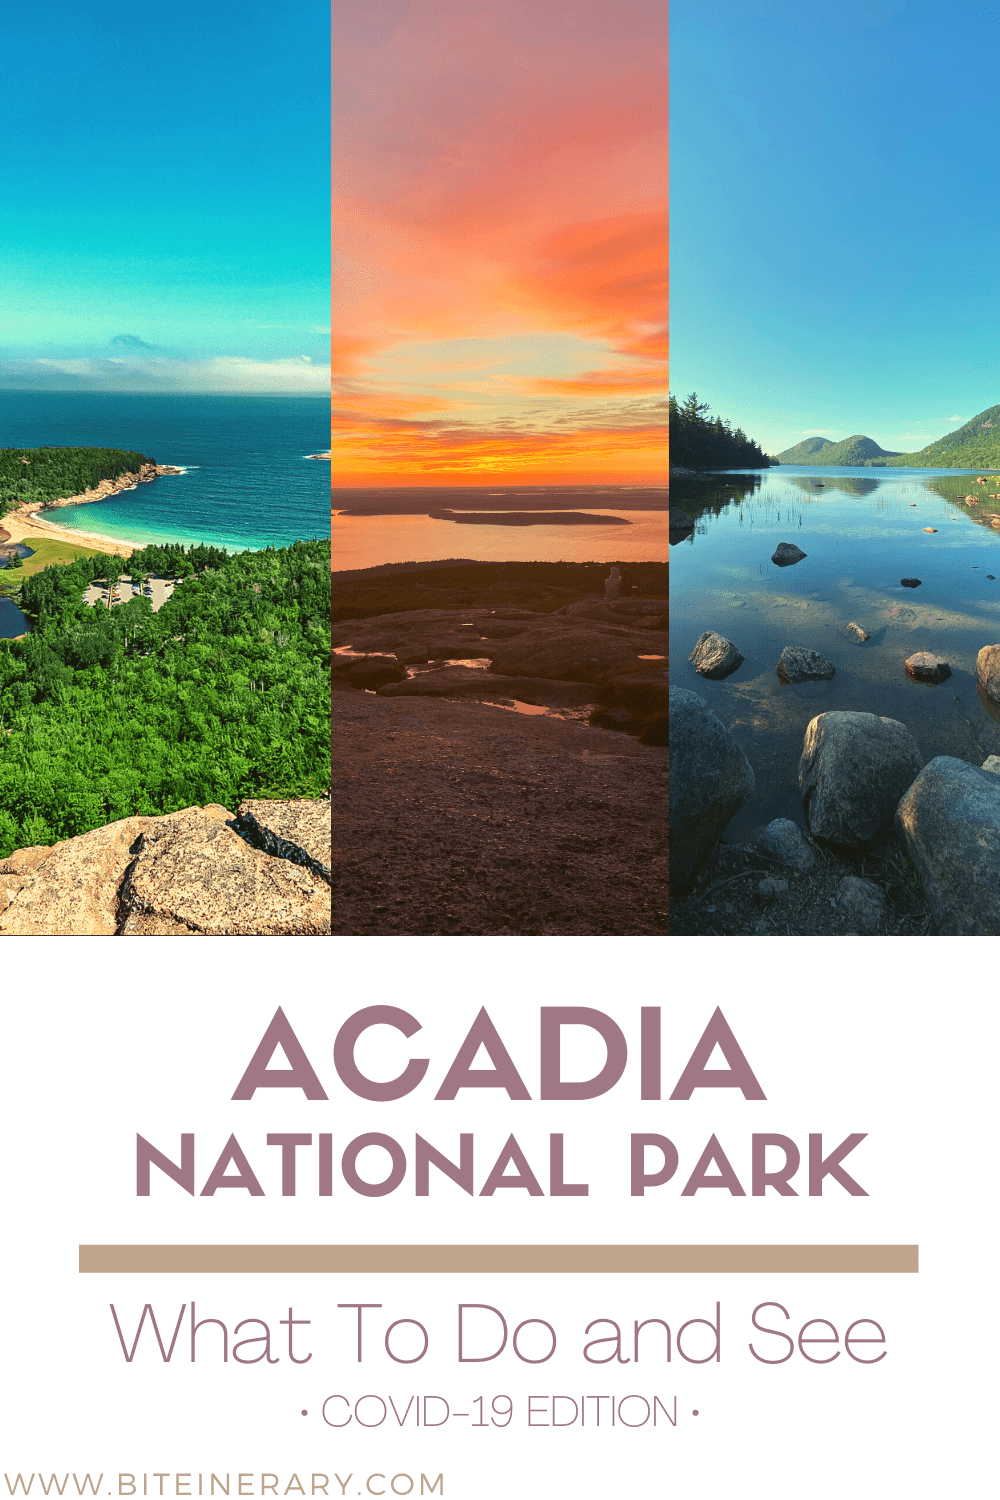 Top things to do and see in Acadia National Park Maine by Biteinerary